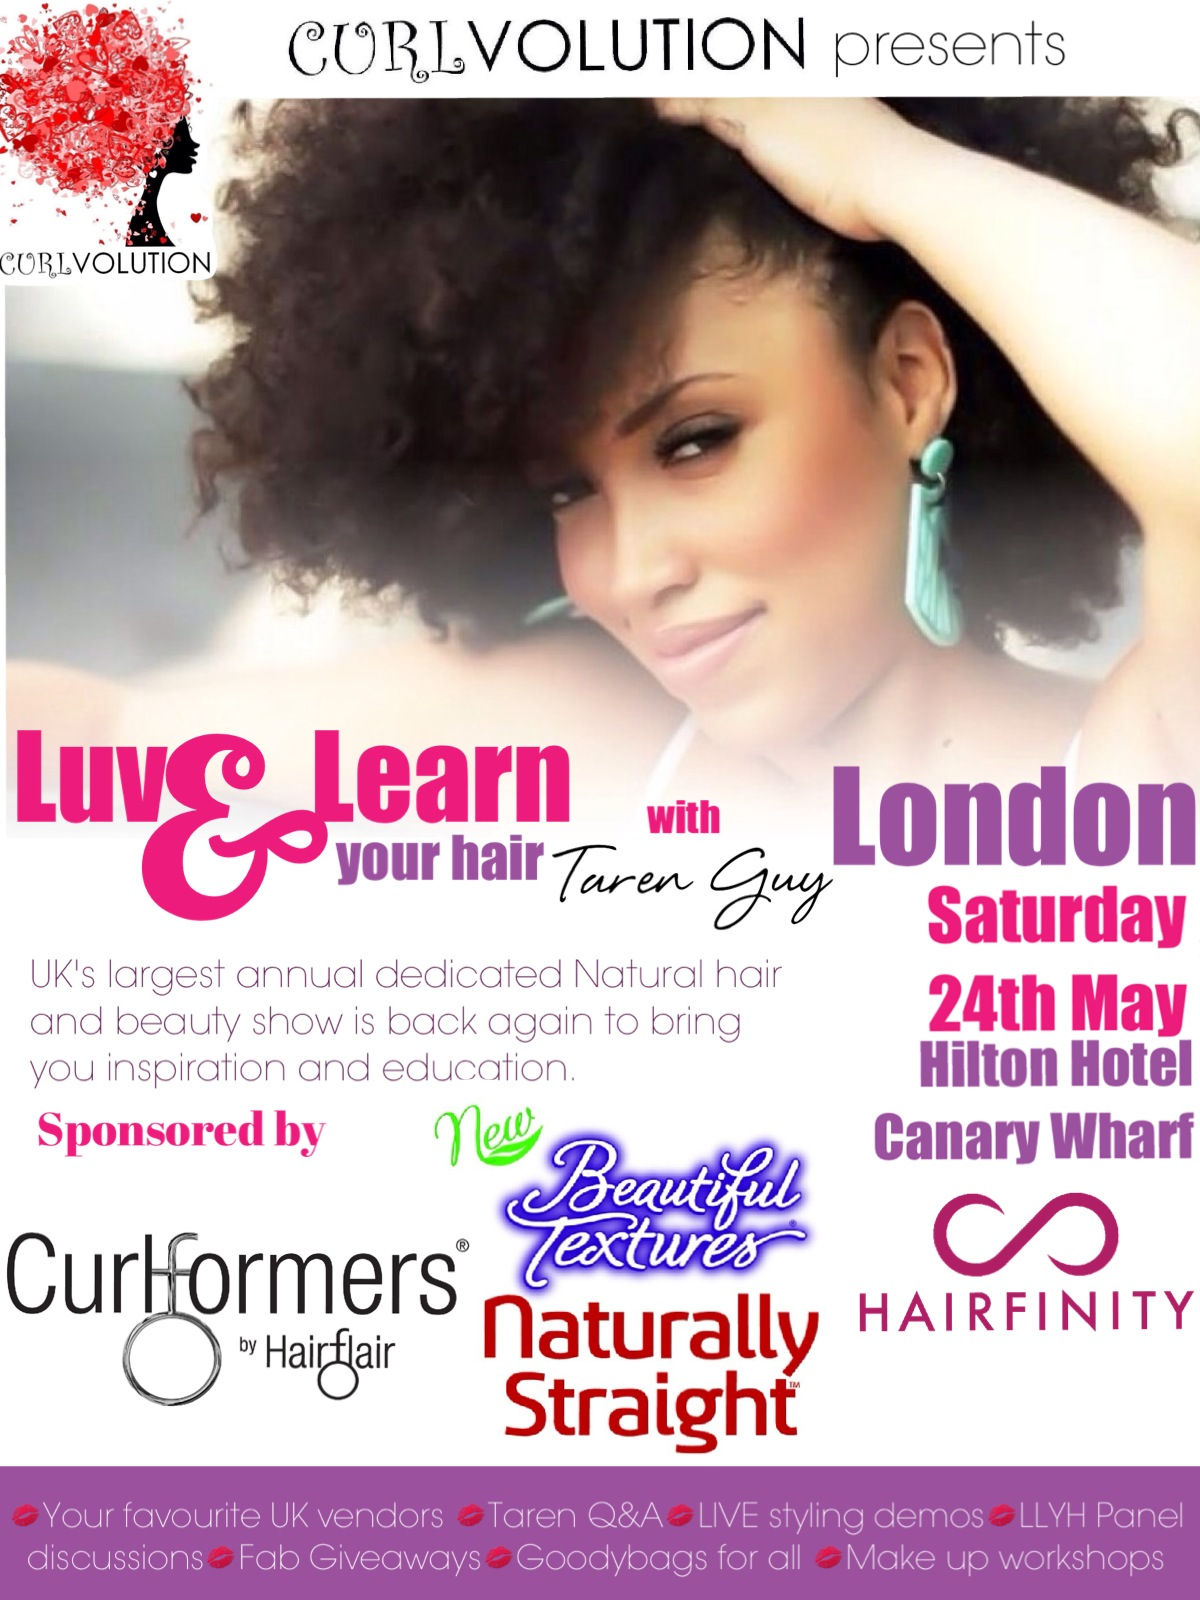 Curlvolution Presents Luv & Learn Your Hair with Taren Guy ...